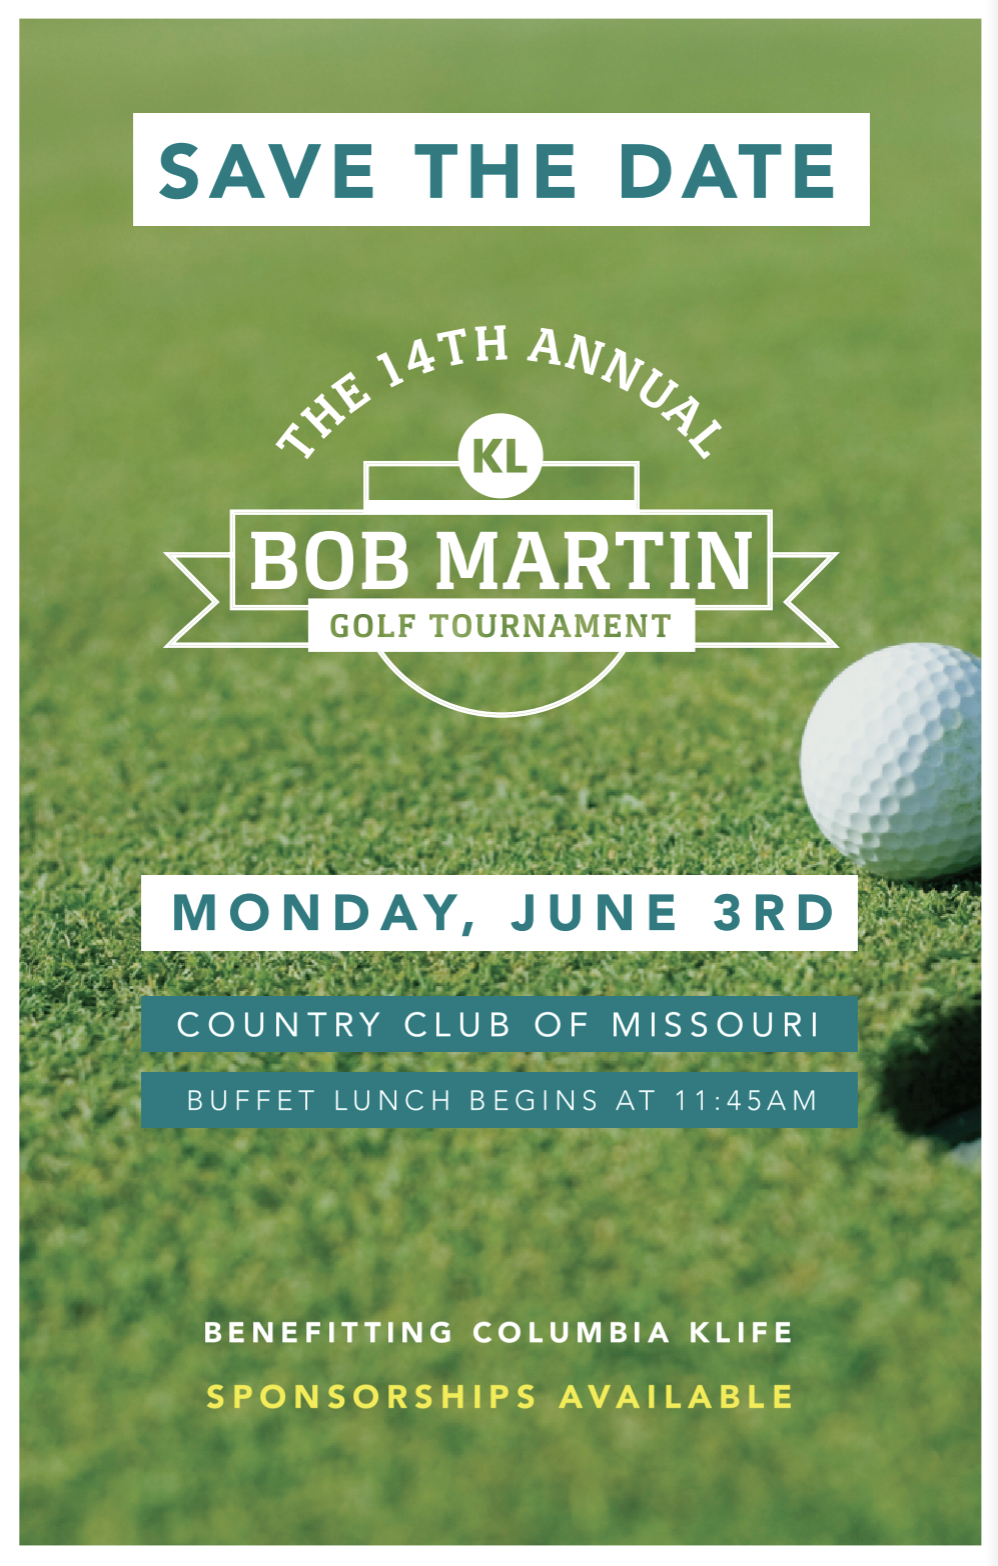 The 14th Annual Bob MartinGolf TournamentFundraiser - WHEN: June 3rd, 2019 WHERE: the Country Club of Missouri.Day of Schedule:11:30 AM Registration11:45 AM Buffet Lunch12:30 AM Shotgun startColumbia KLIFE is funded entirely by individual donations from people like you. All donations stay right here in Columbia and are used directly to support our ministry and serve our kids. By investing in KLIFE, you make it possible for us to share life with over 200 kids and leaders each year. Your investment is one that will continue giving for years and years to come.Three ways to make an impact:1. Become a Tournament sponsor and be featured in all promotional materials2. Register as an individual player or register a team of 4 players3. Donate to Columbia KLIFEHow to do so:-CLICK HERE to make an online transaction or-Checks may be made payable to Columbia KLIFE and mailed to us at:Columbia KLIFE1507 Mills DriveColumbia, MO 65203*If mailing a check please attach this form.All donations are tax-deductible. A receipt will be mailed to address given at registration for your records.To learn more about the mission and impact of Columbia KLIFE we invite you explore our website.Thank you for supporting KLIFE!